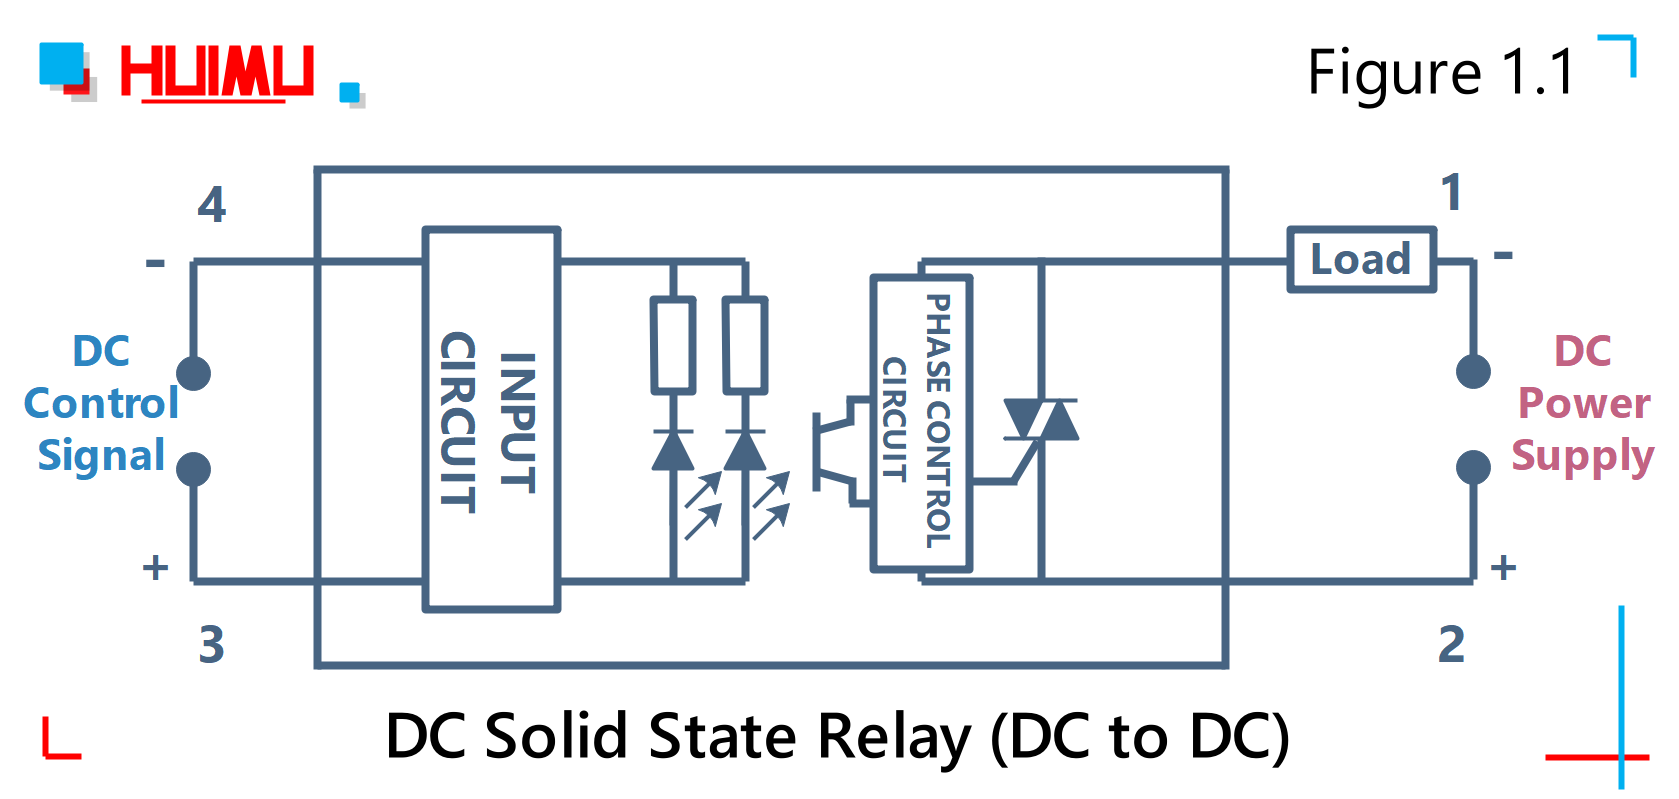 DC solid state relay (DC to DC) wiring diagram and circuit diagram